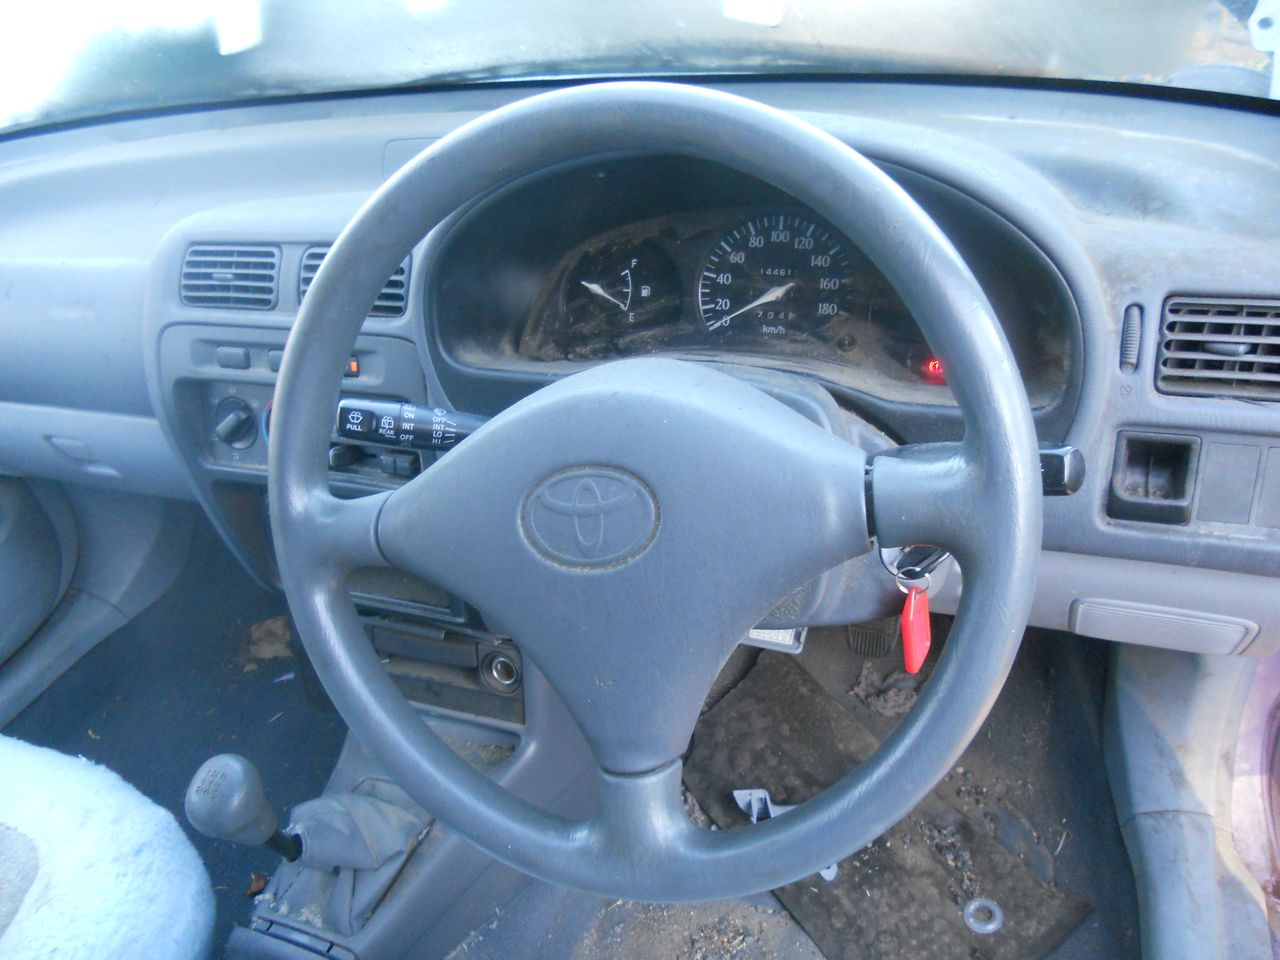 TOYOTA-STARLET-EP91-1996-1999-BLINKER-WIPER-COMBINATION-SWITCH-WRECKING-CAR